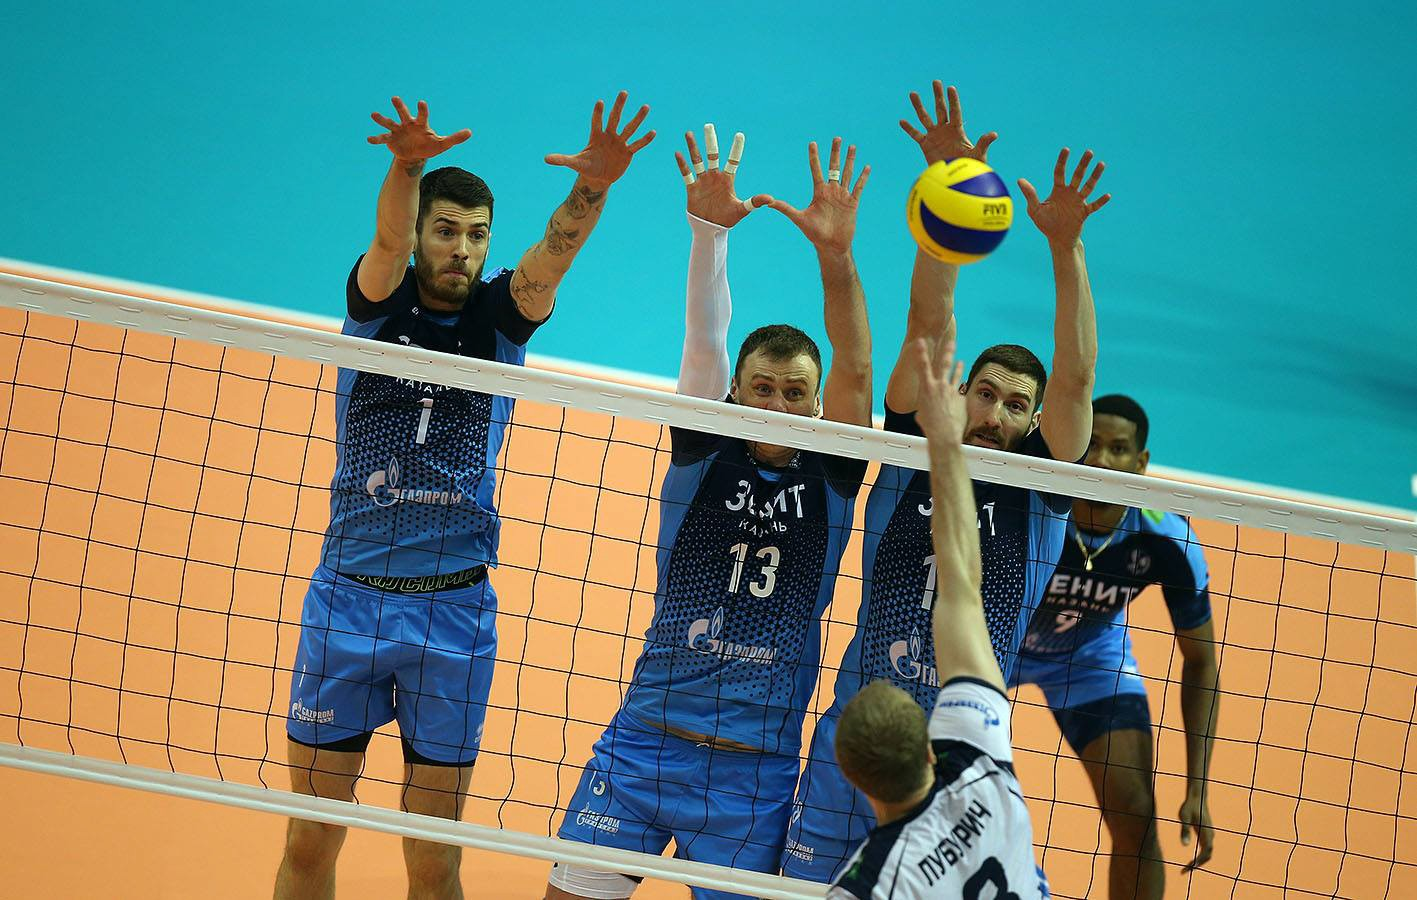 12 - 13 May sees the Final Four of the Volleyball Champions League 2018. Zenit Kazan play at home!